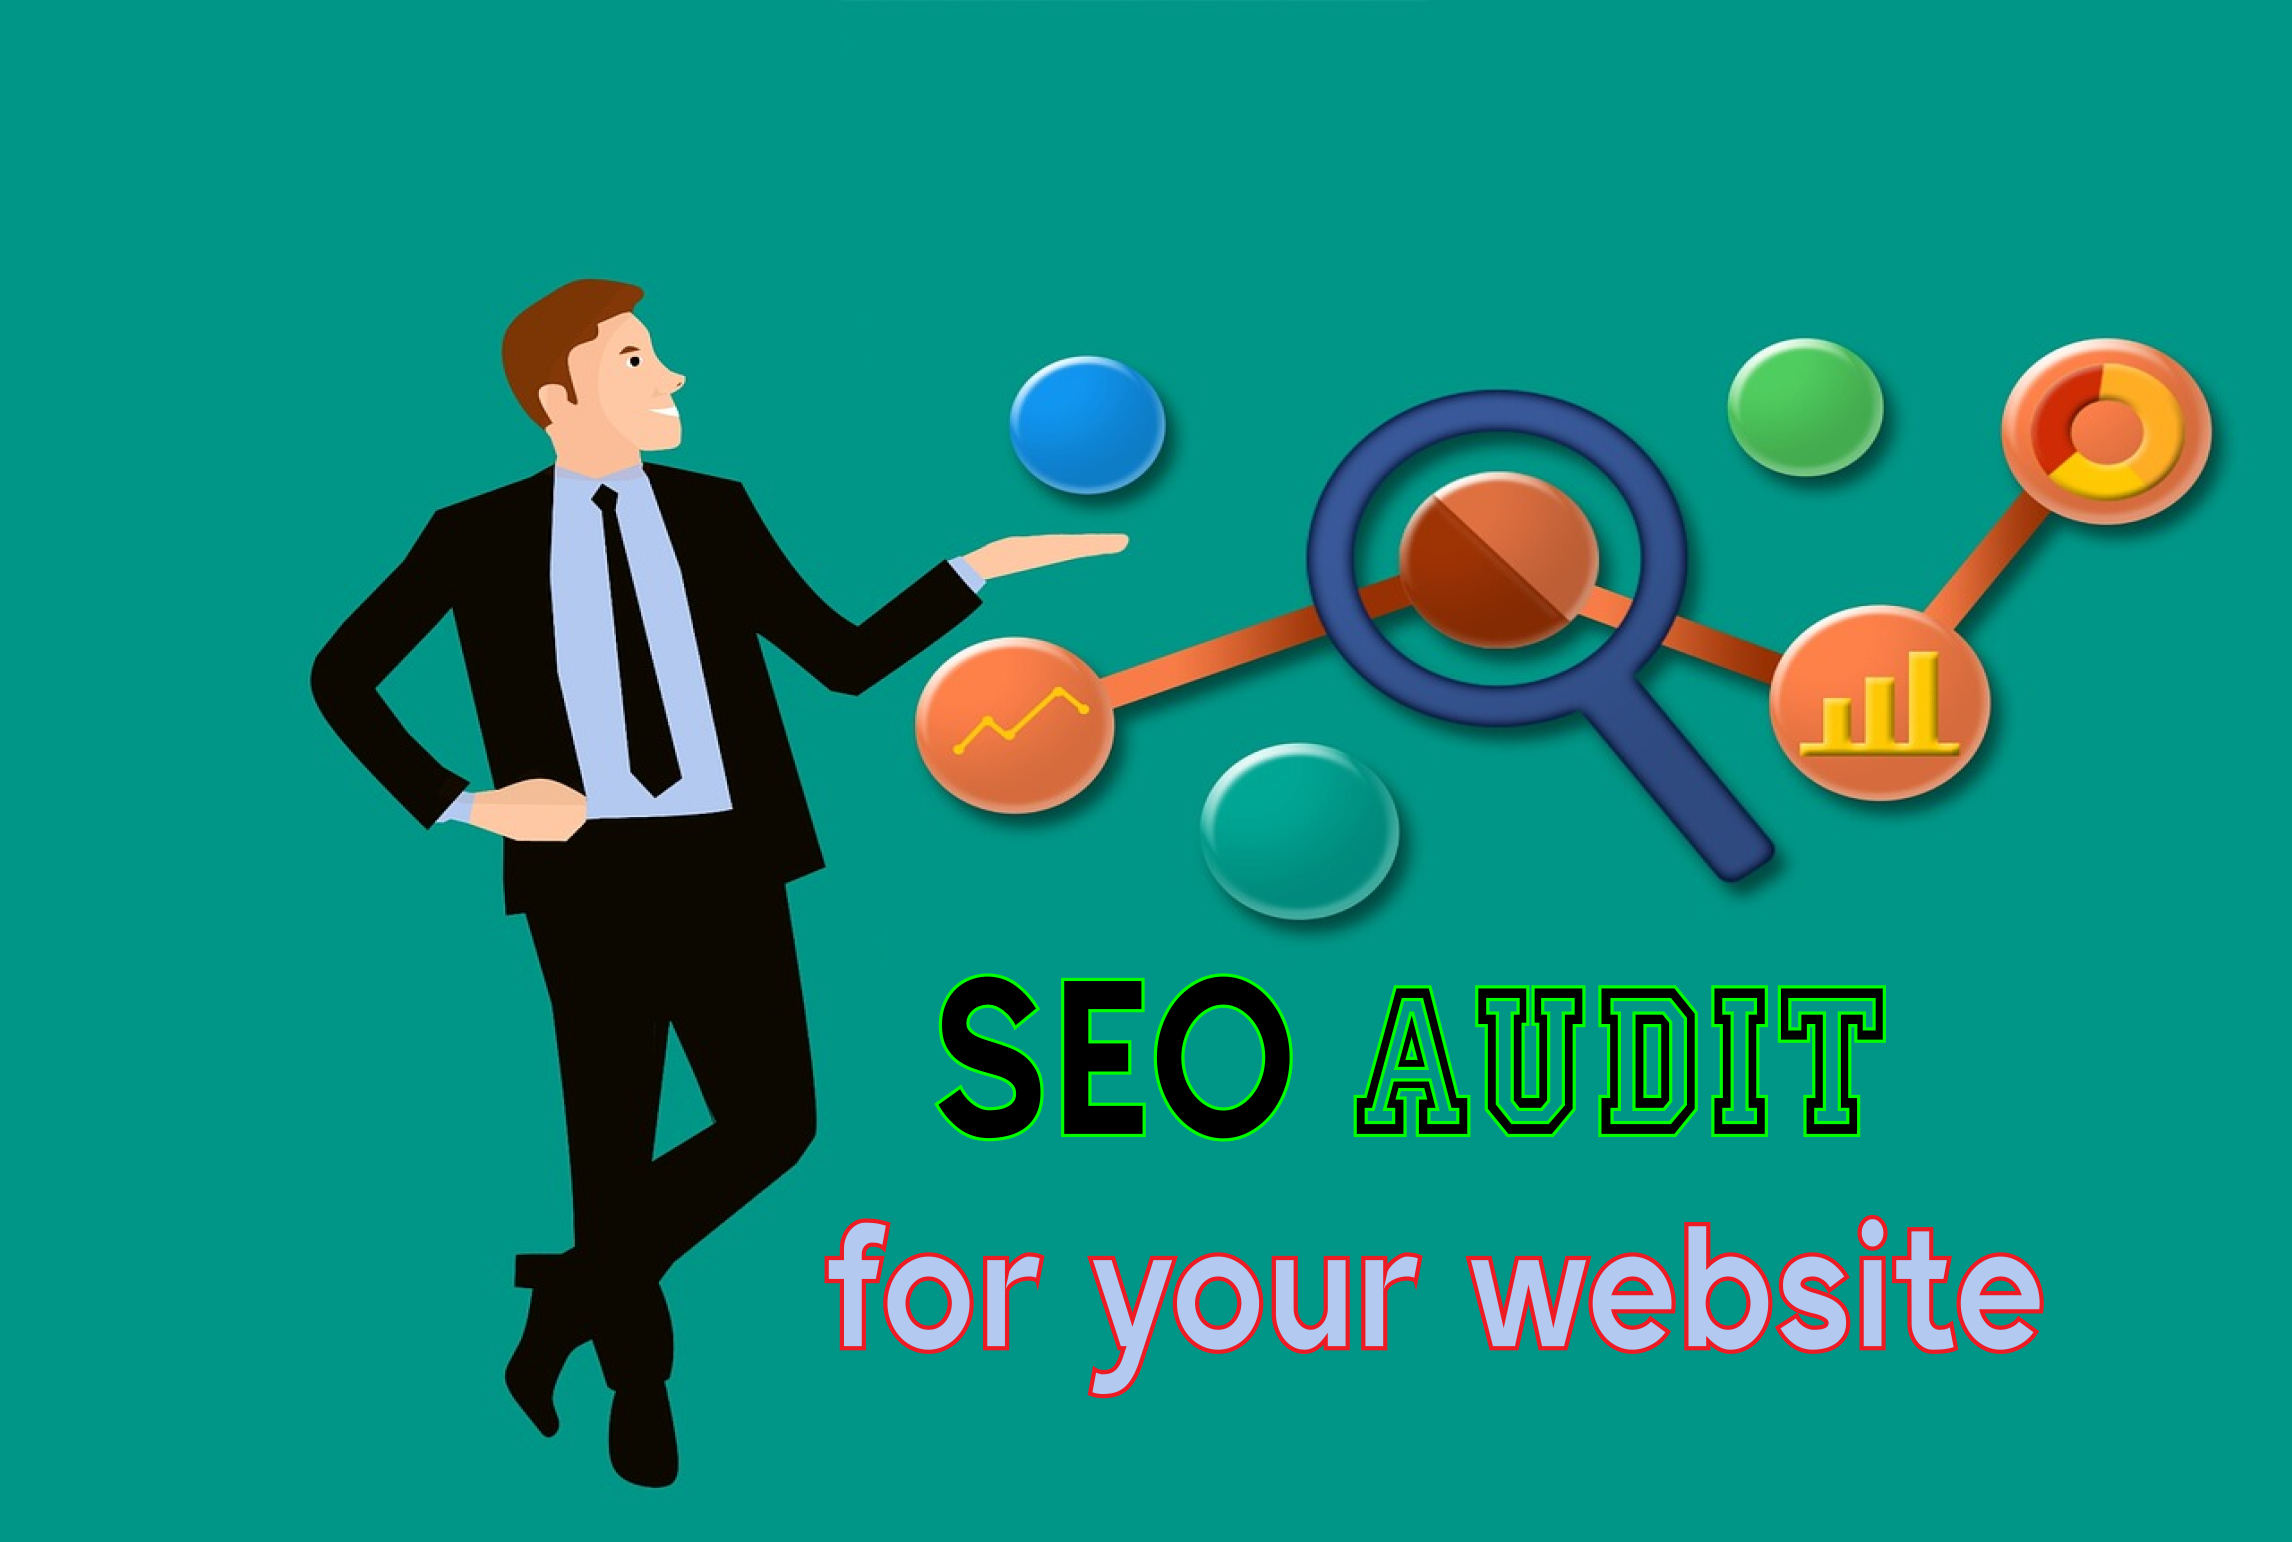 I provide a full SEO audit for your website